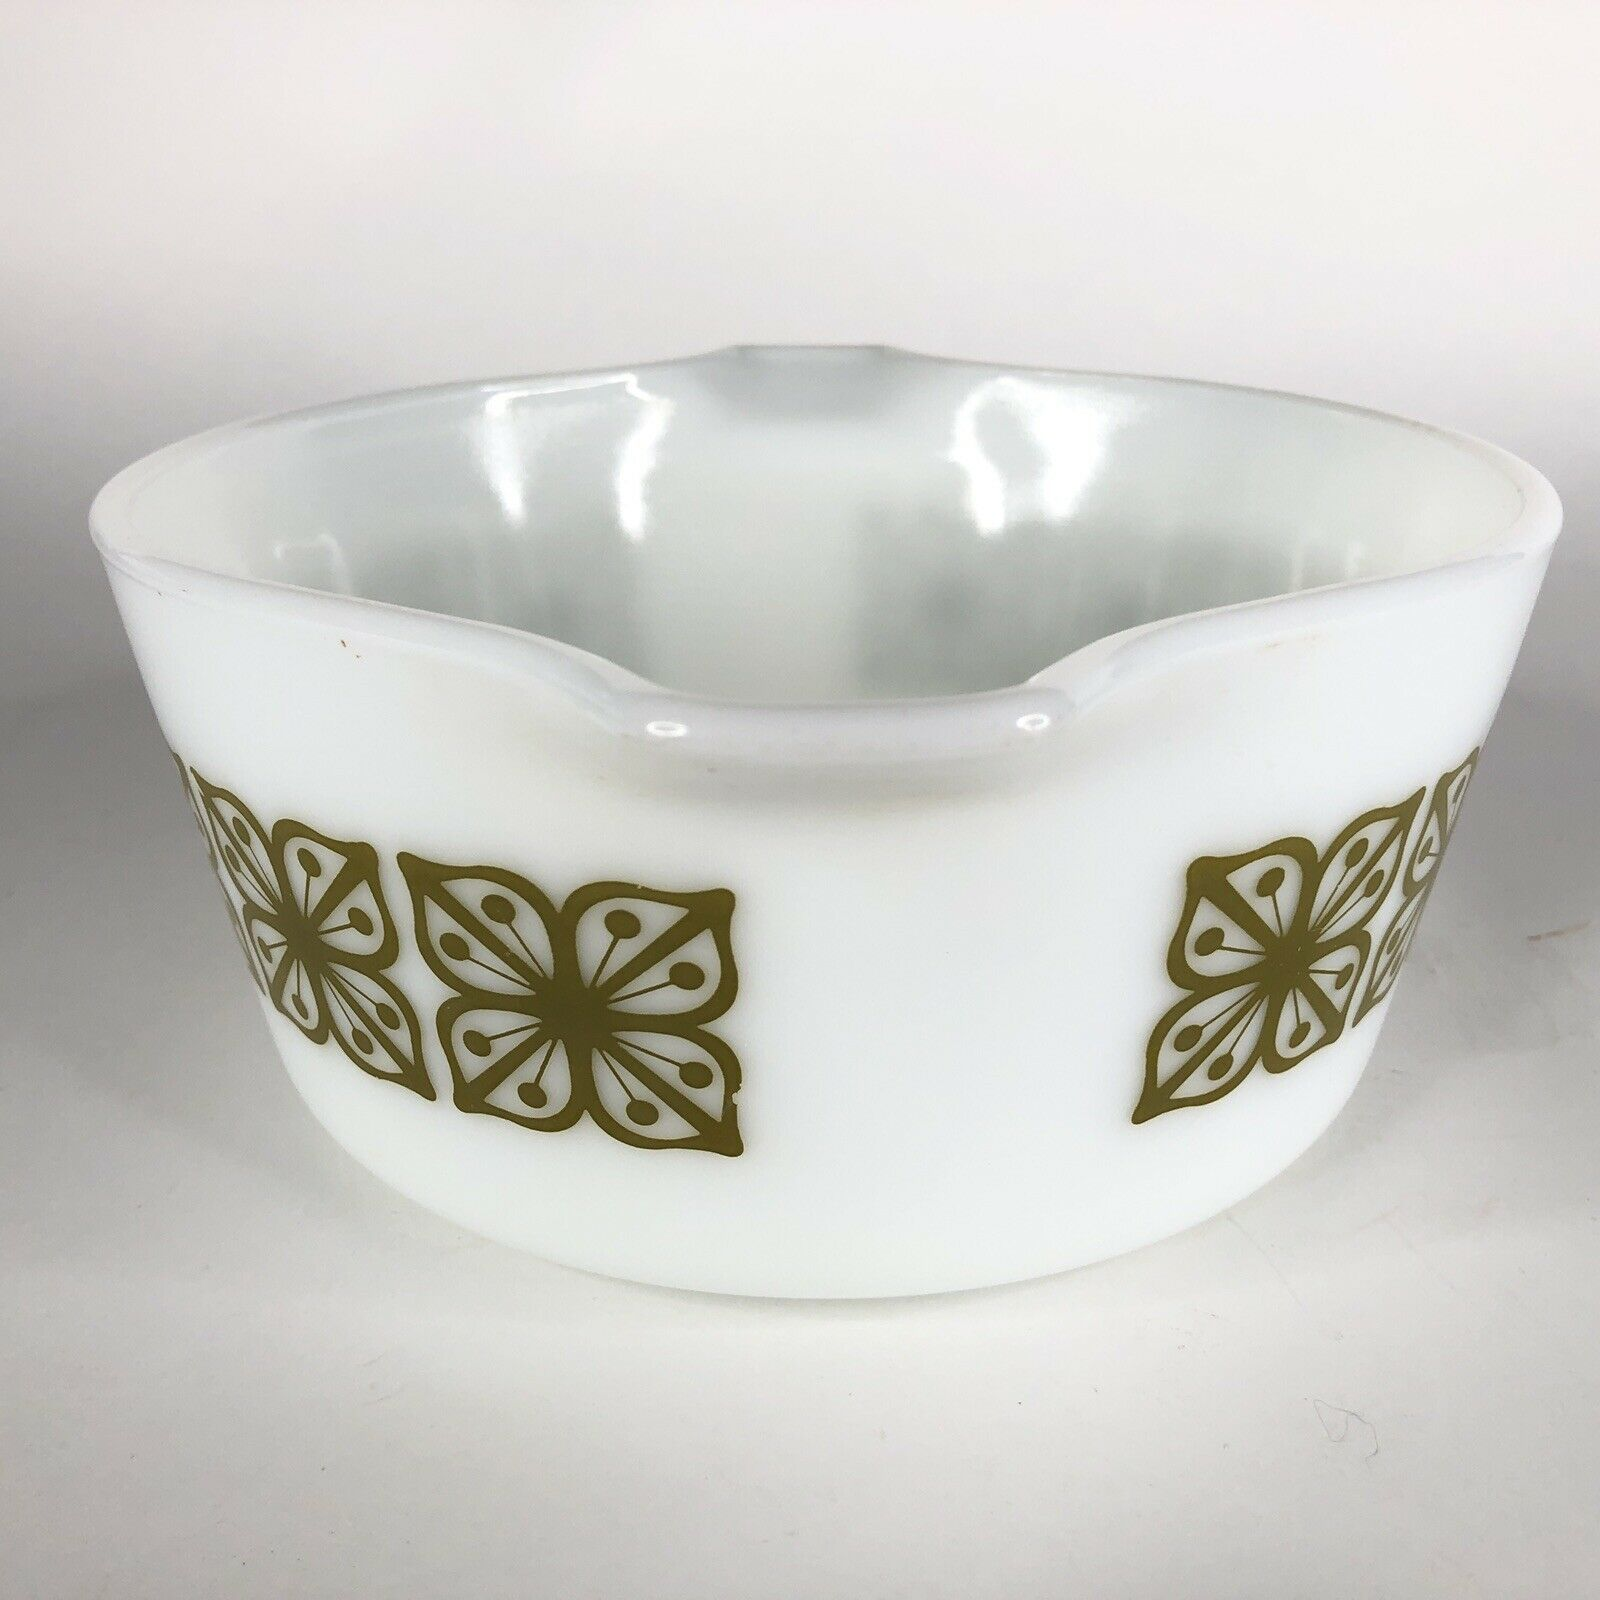 Pyrex Verde Square Green Flower Casserole Dish 474 B Covered Baking 1.5 Quart QT image 6